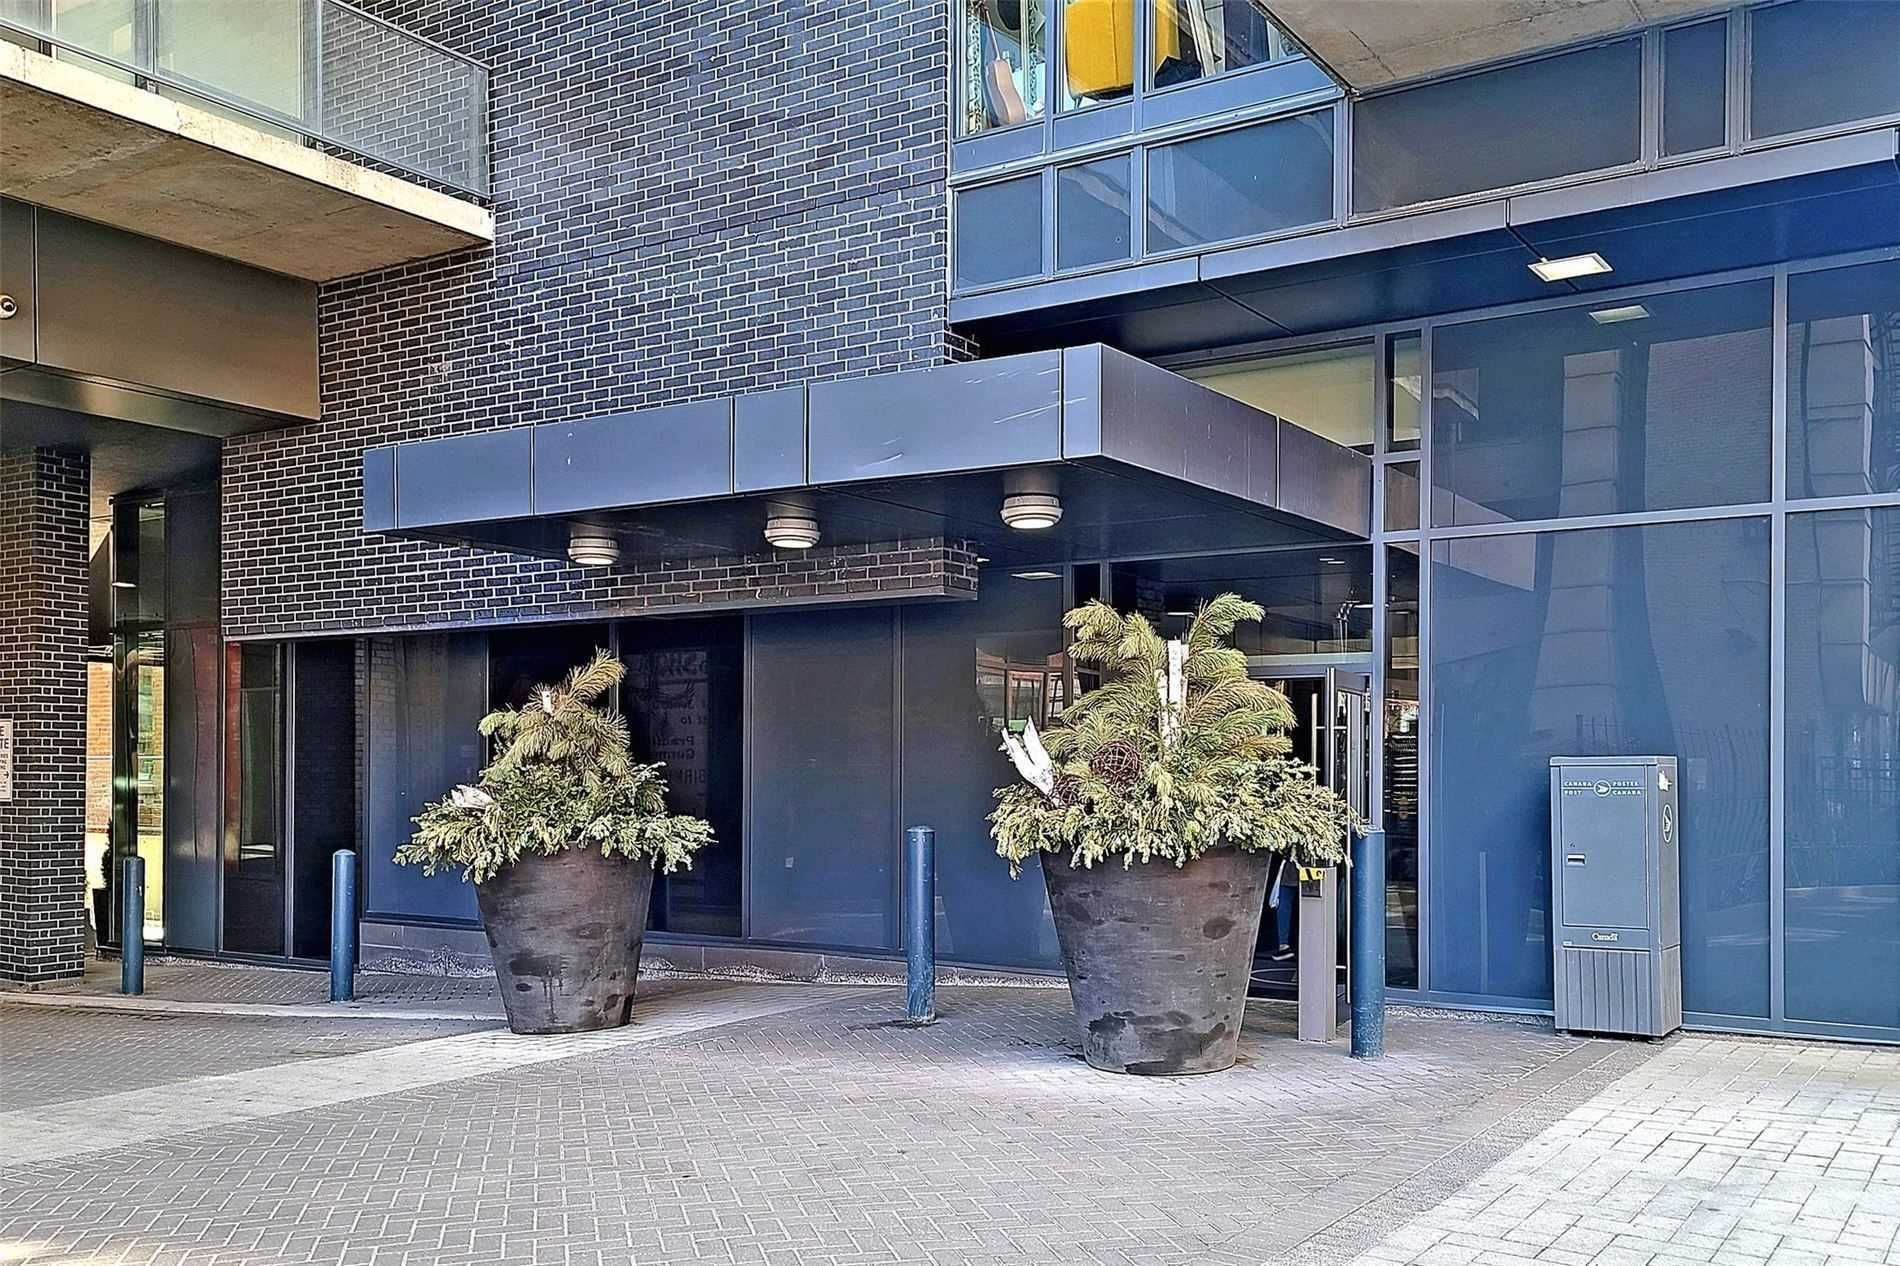 478 King St W, unit 519 for sale in Toronto - image #1